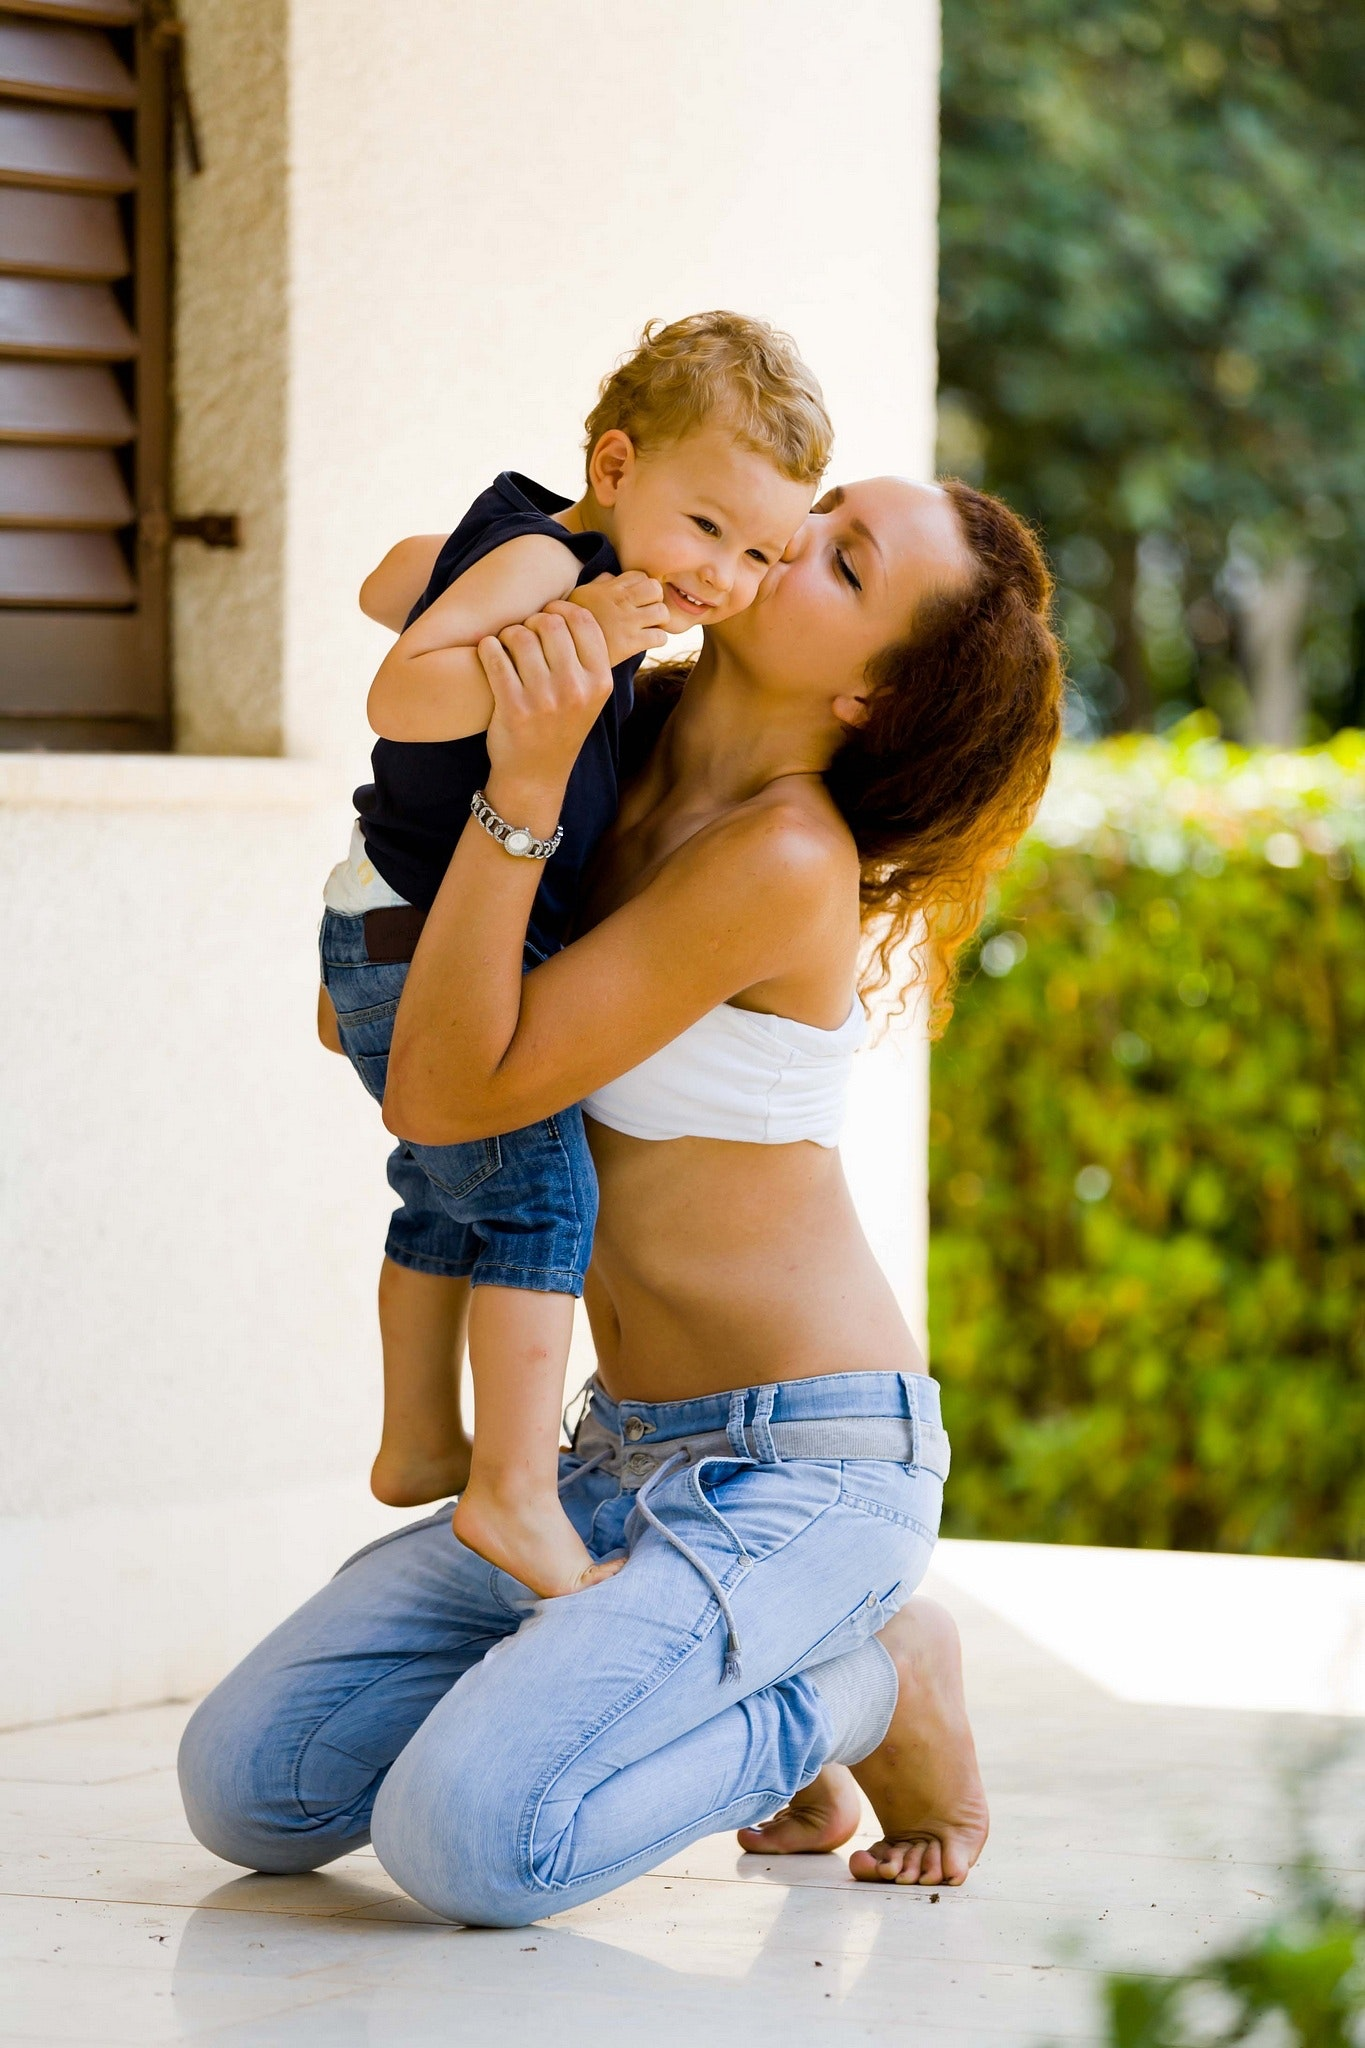 Mother And Son Bonding, Affection, Leisure, Togetherness, Together, HQ Photo